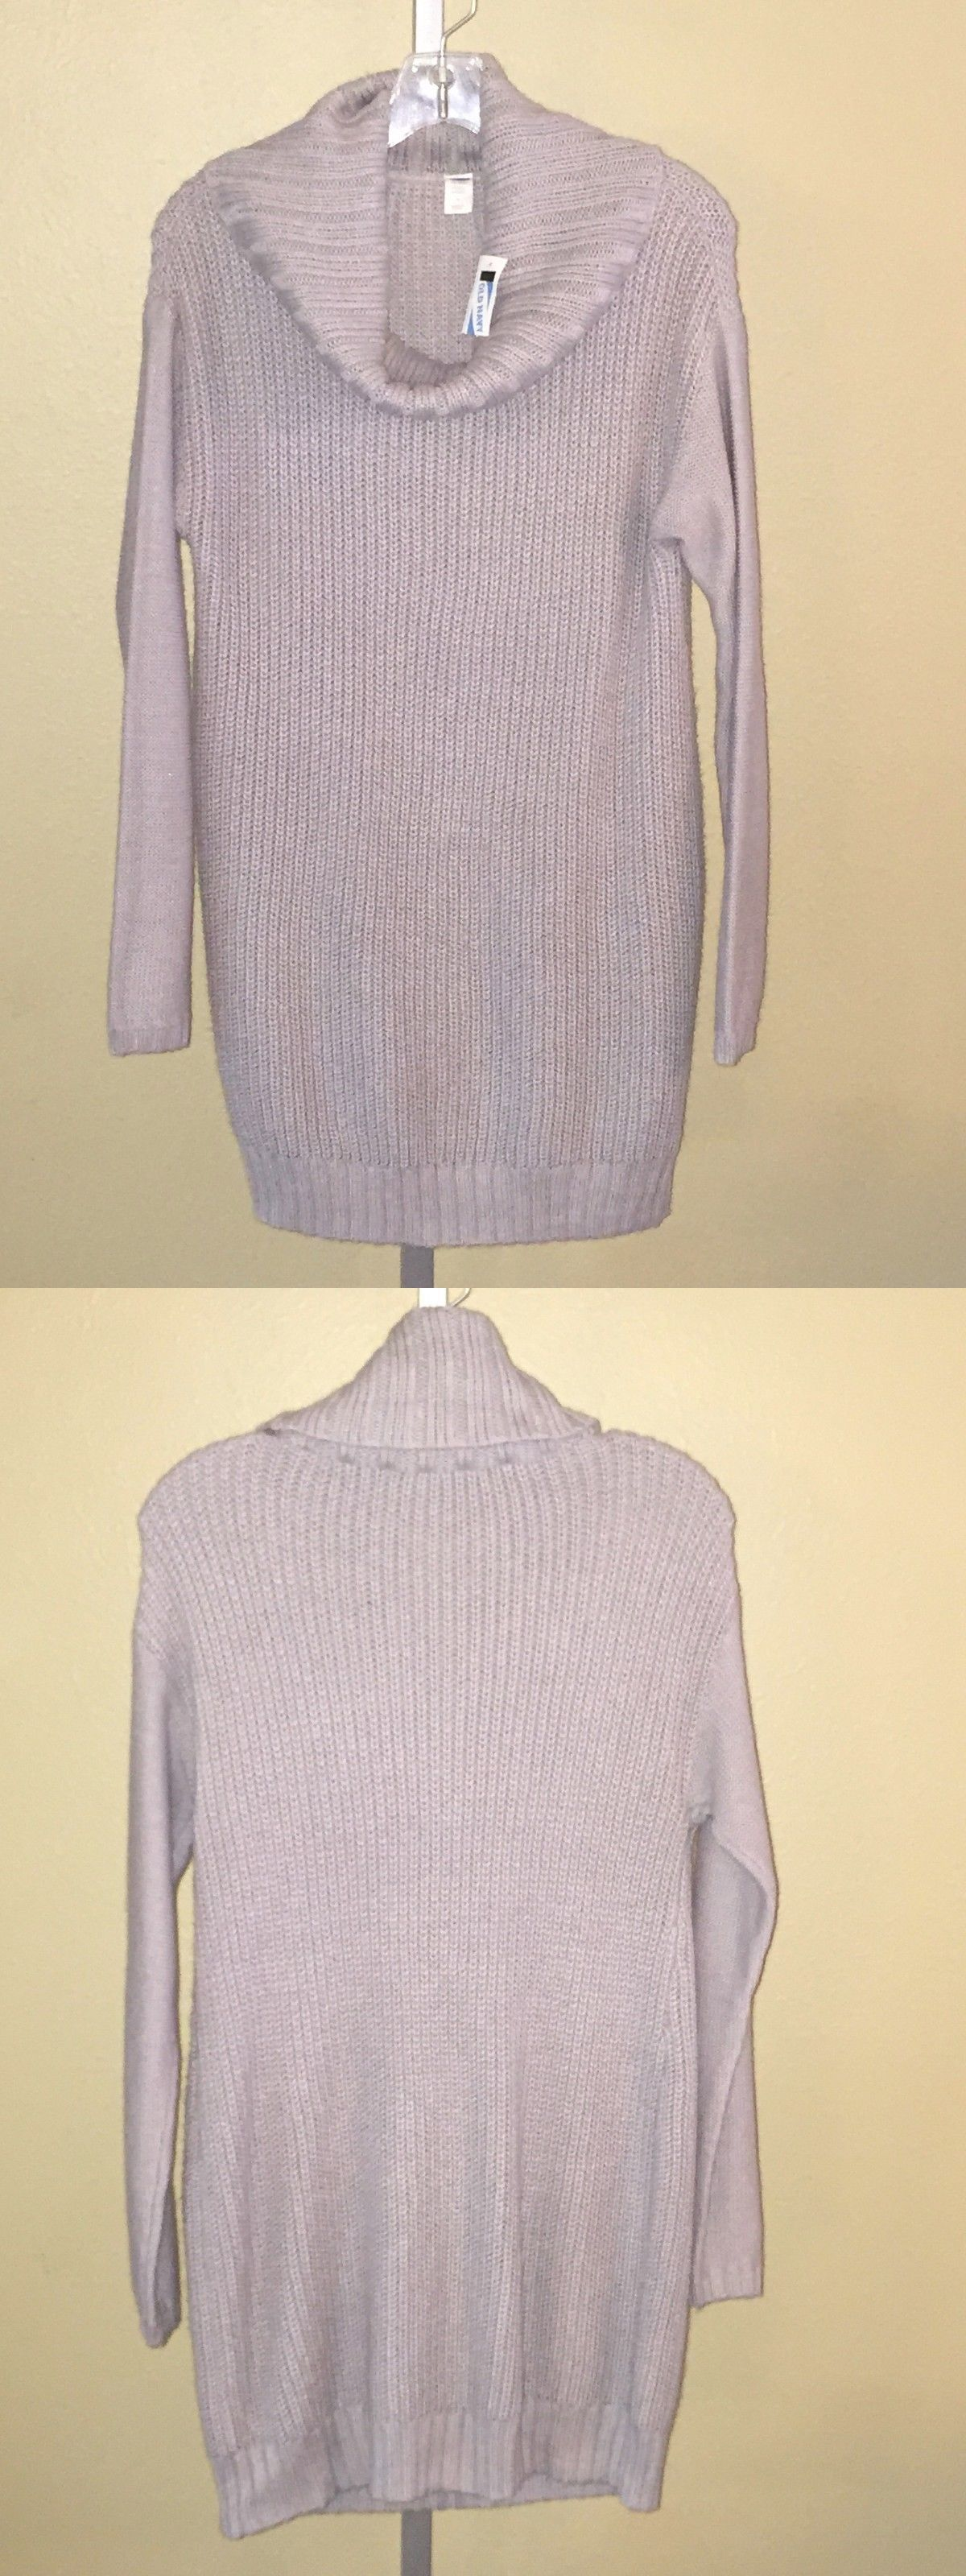 Sweaters 11538: Women S Old Navy Cloud Cover Gray Maternity Cowl ...